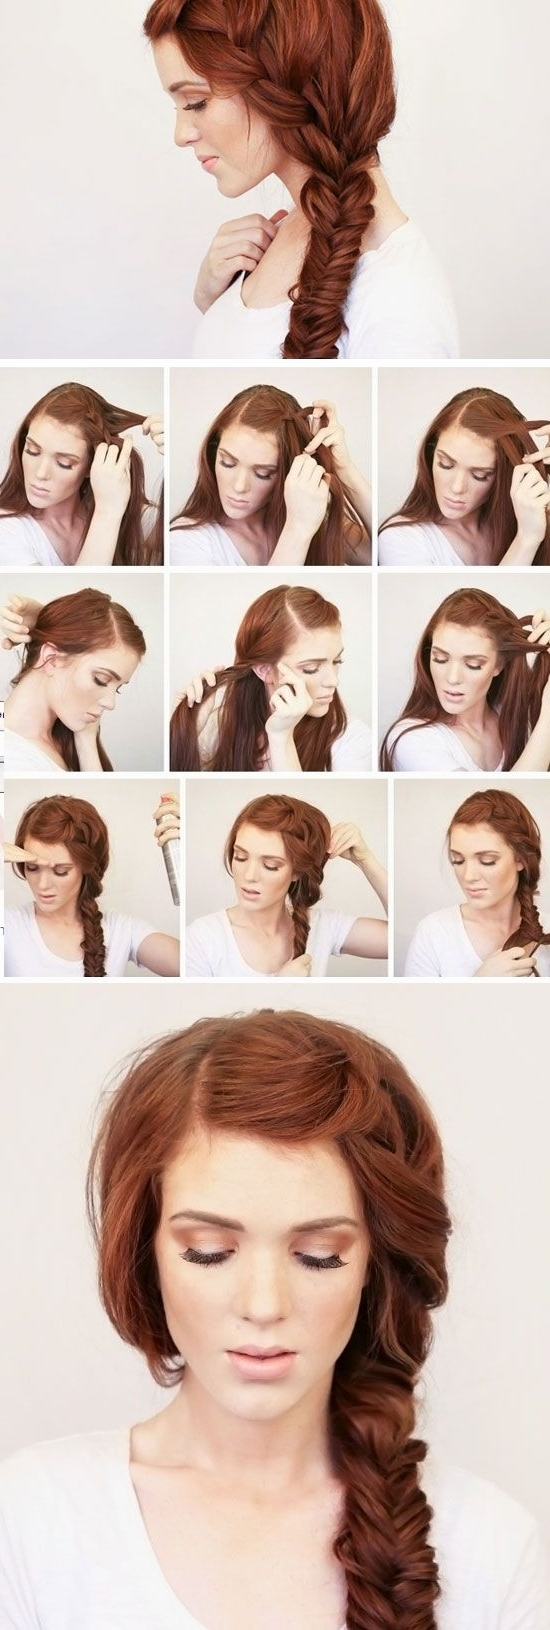 17 Easy Boho Hairstyles For Medium Hair | Hair Styles 30+ Amazing Cute Boho Hairstyles For Medium Hair